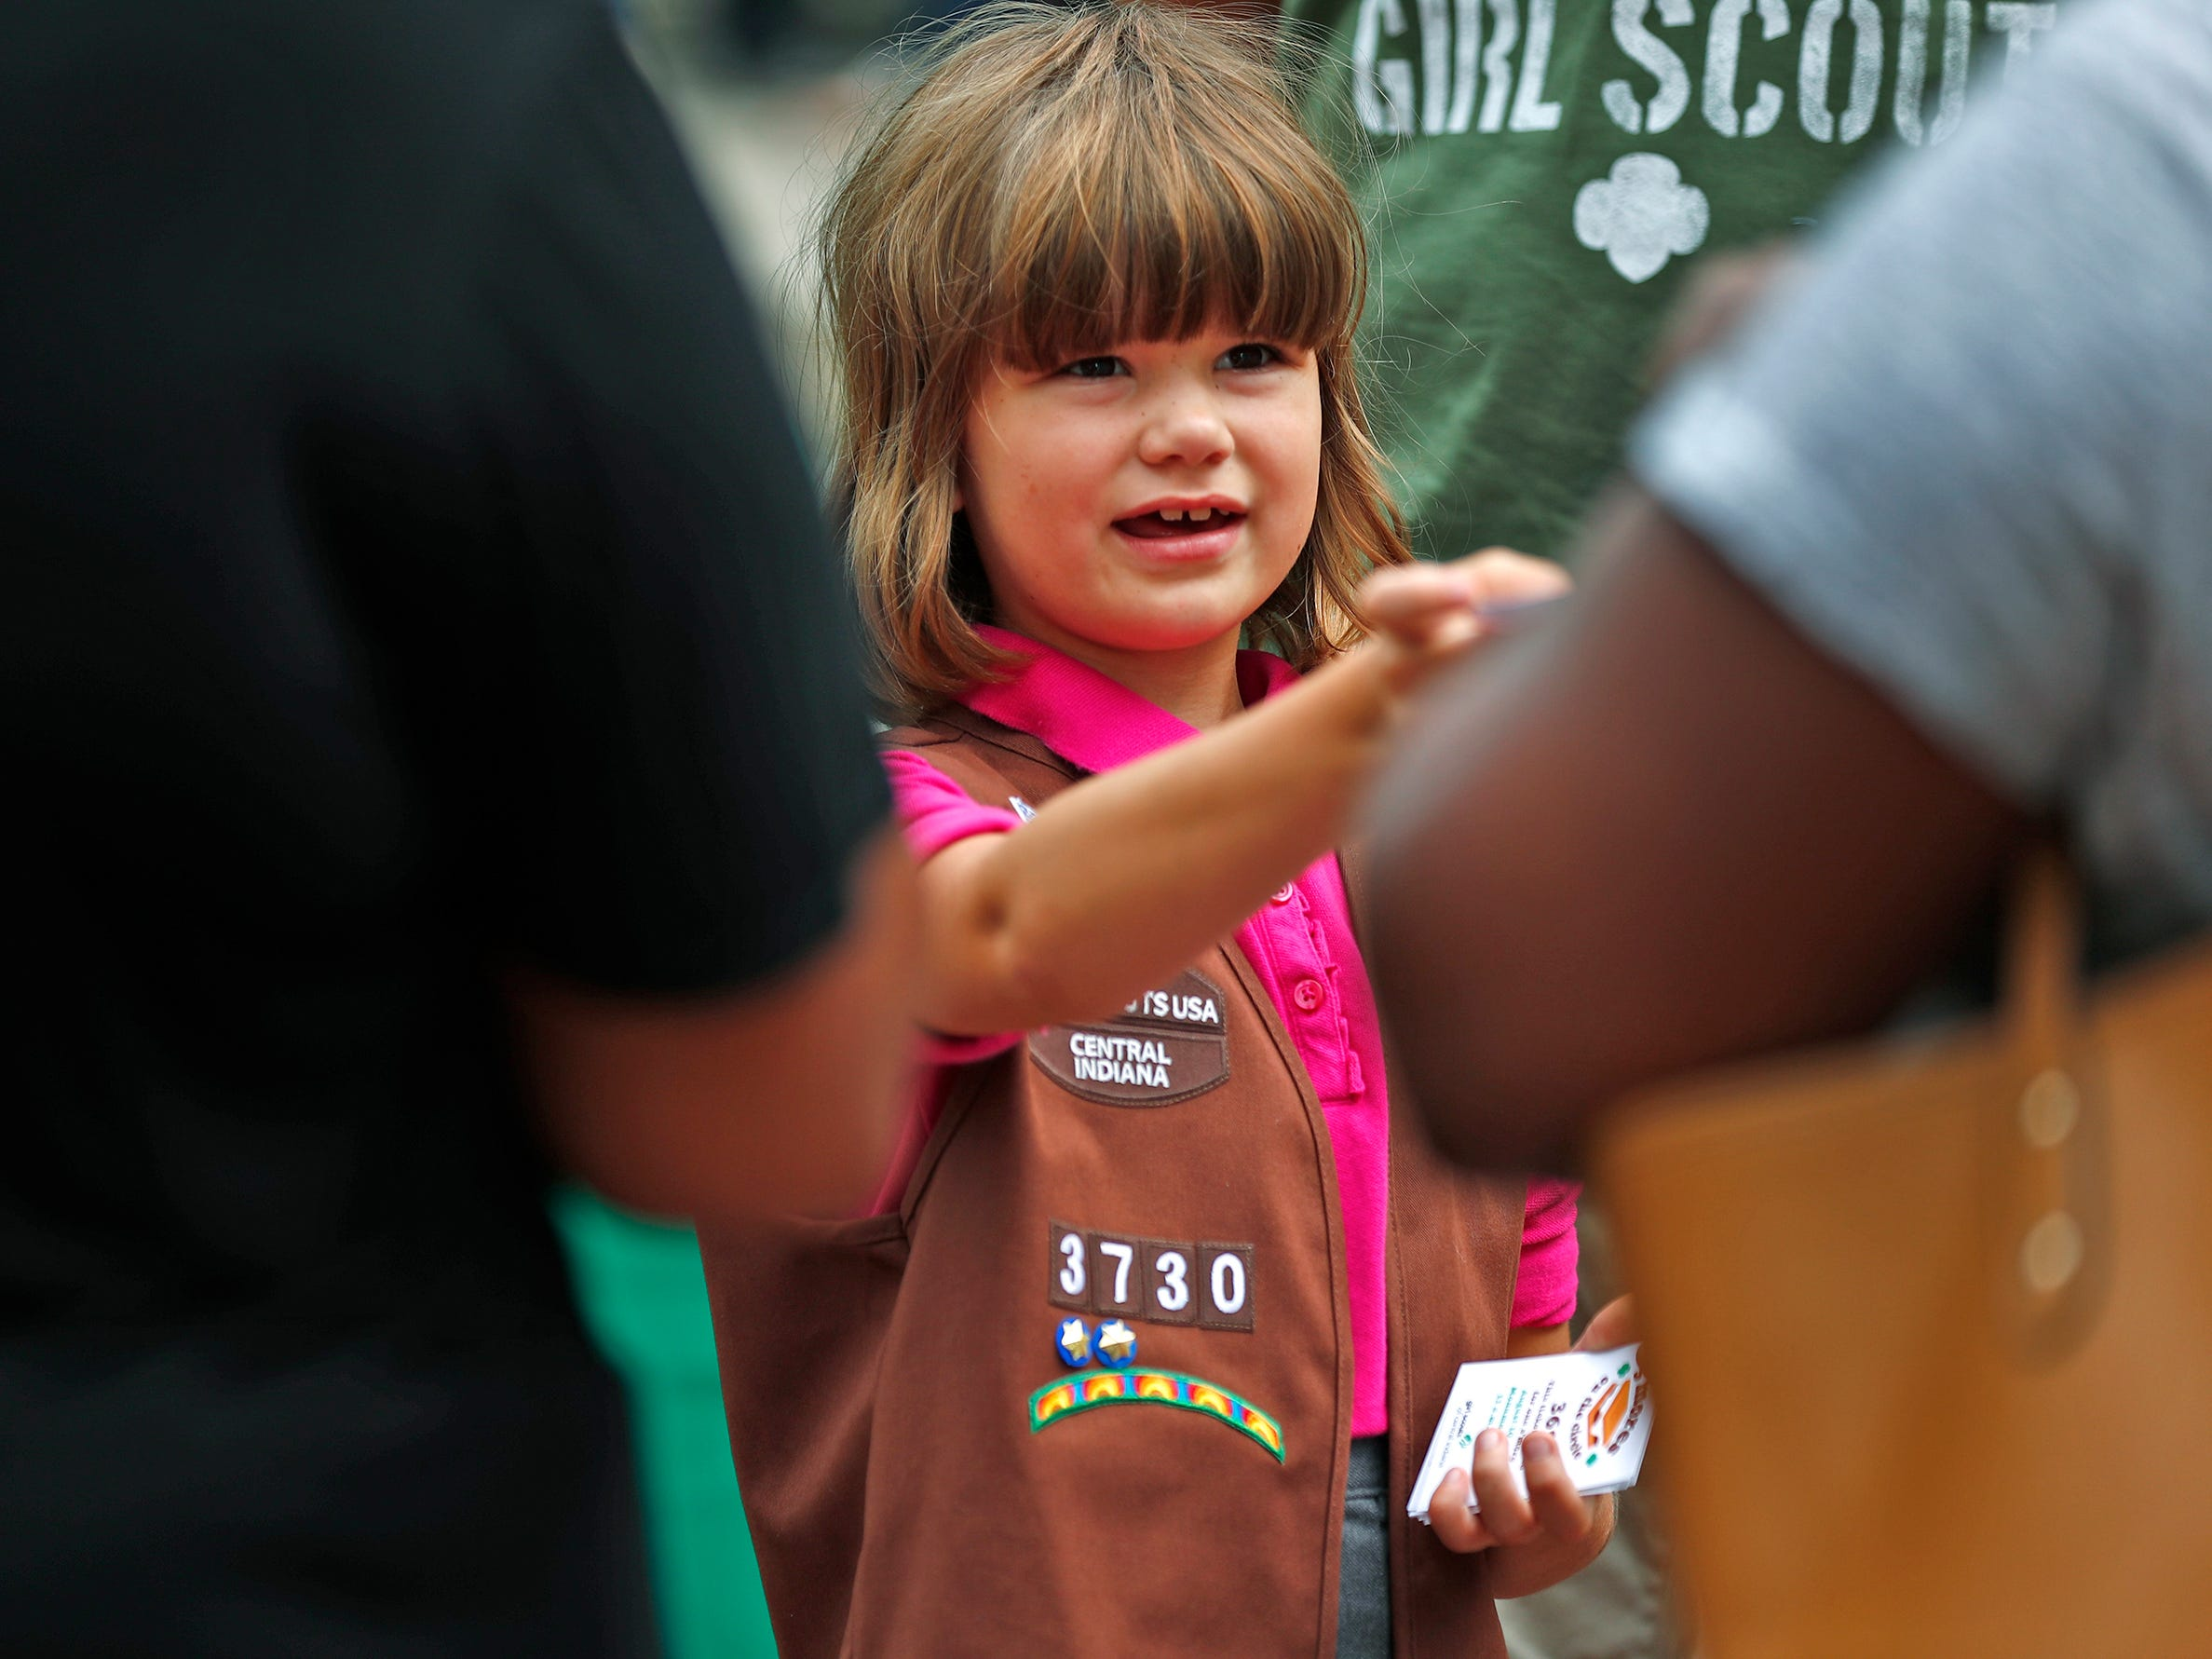 Marian McConnell hands out tickets for s'mores during the Girl Scouts' S'mores on the Circle event, Friday, Aug. 10, 2018.  The event celebrated National S'mores Day.  Seven local chefs were featured, creating gourmet s'mores treats, sold as a fundraiser.  Proceeds go for financial assistance for Girl Scouts, helping all girls who want to be a girl scout participating in hands-on adventures and STEM activities.